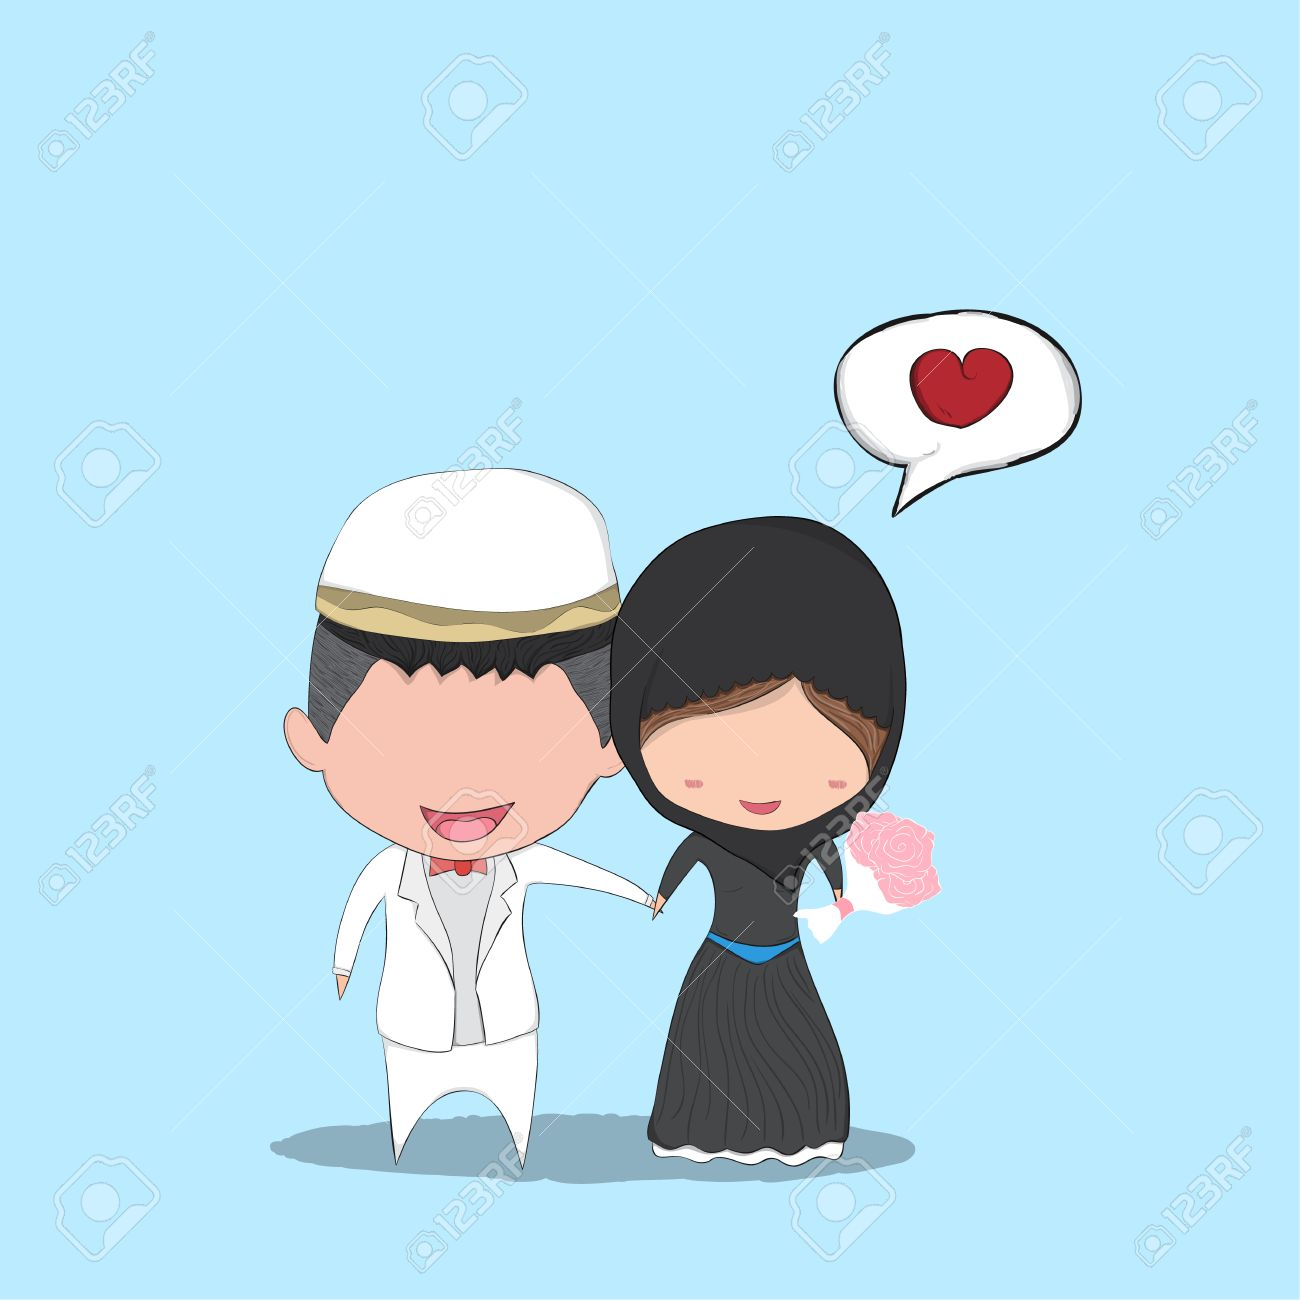 Cute Cartoon Wedding Couple Men And Women Islam Marriage Cute